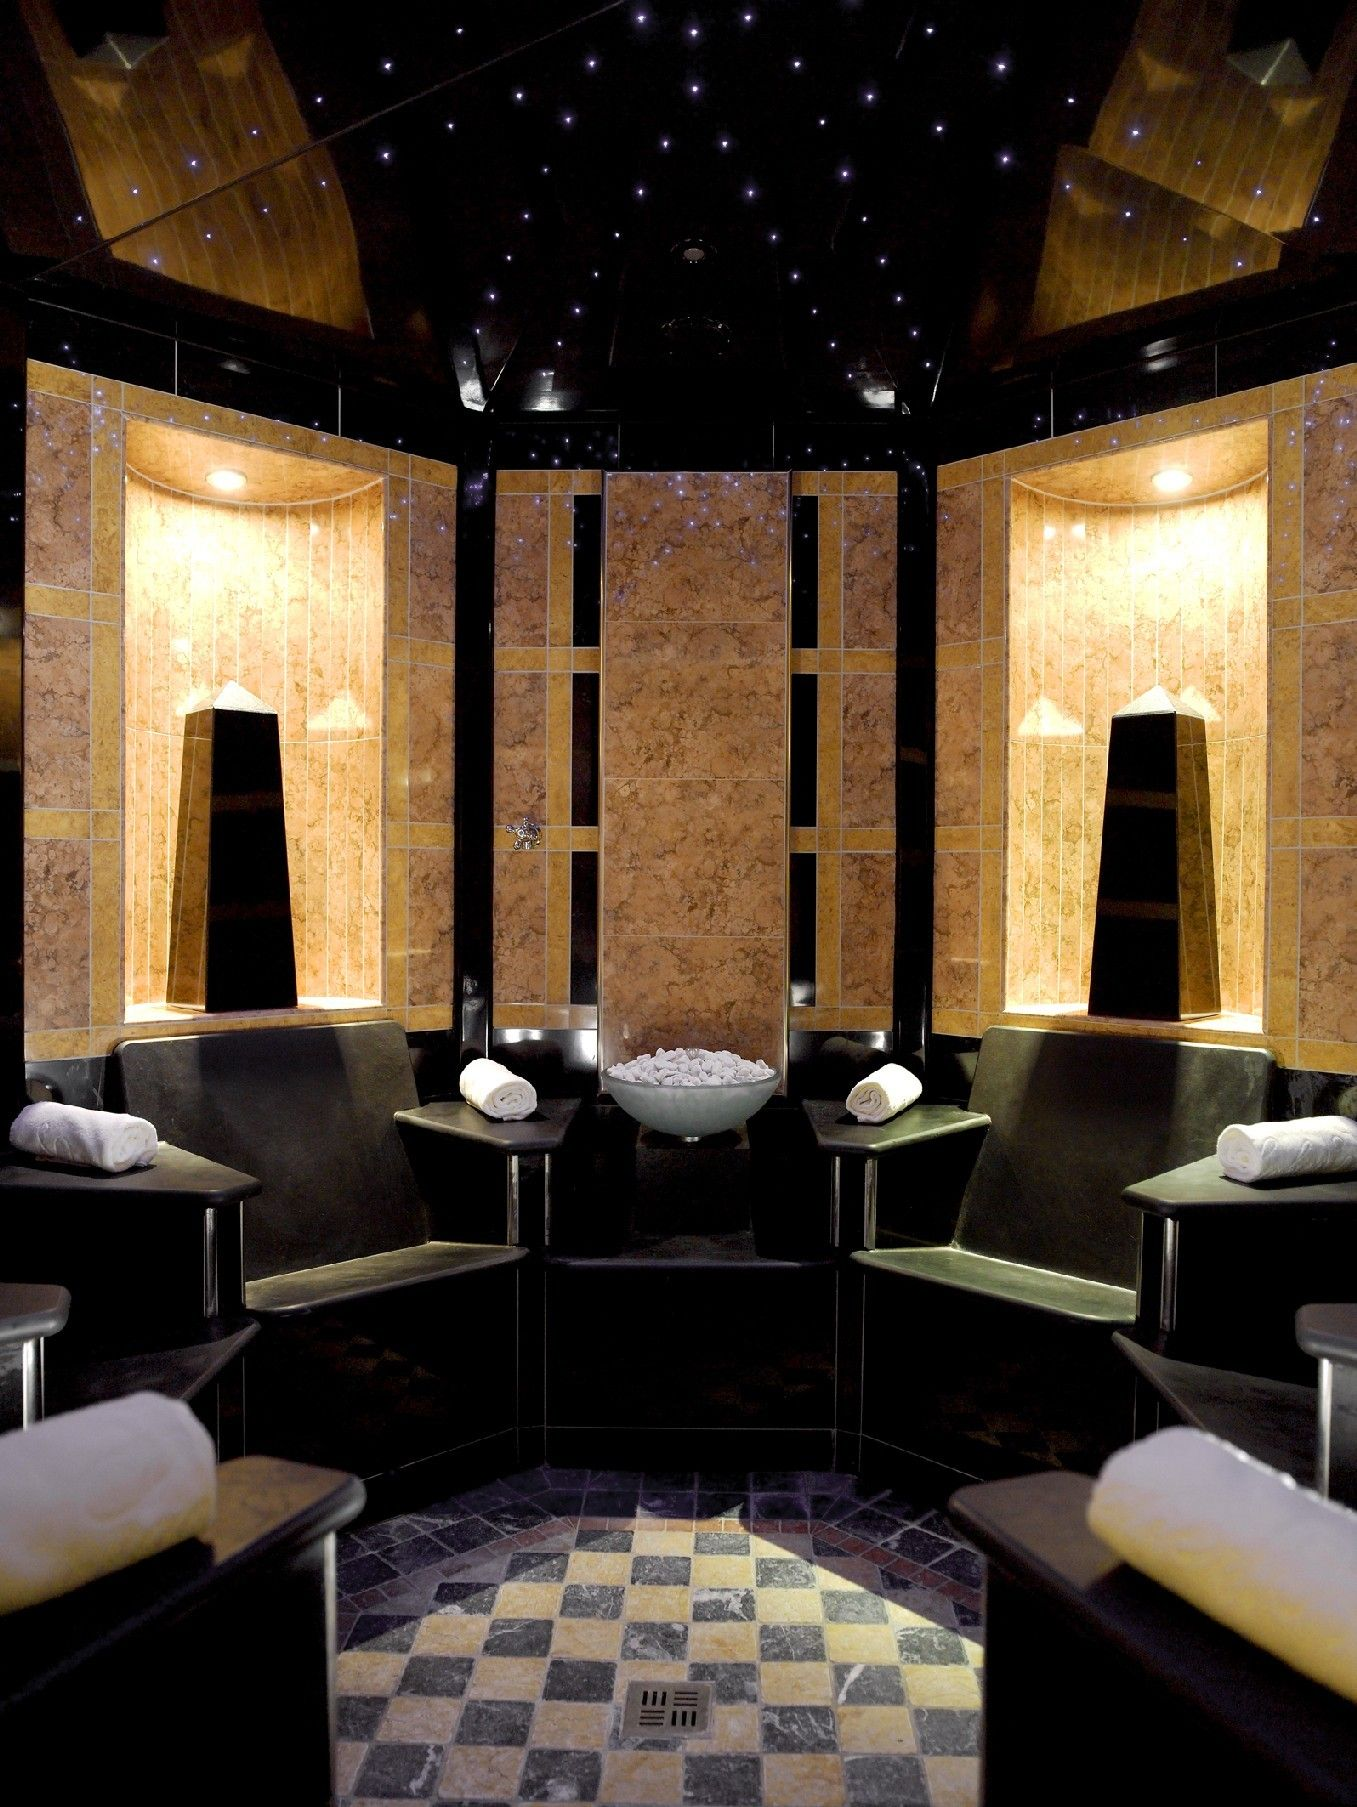 Steam room hotel sacher wien vienna spa luxury for Wine and design hotel vienna